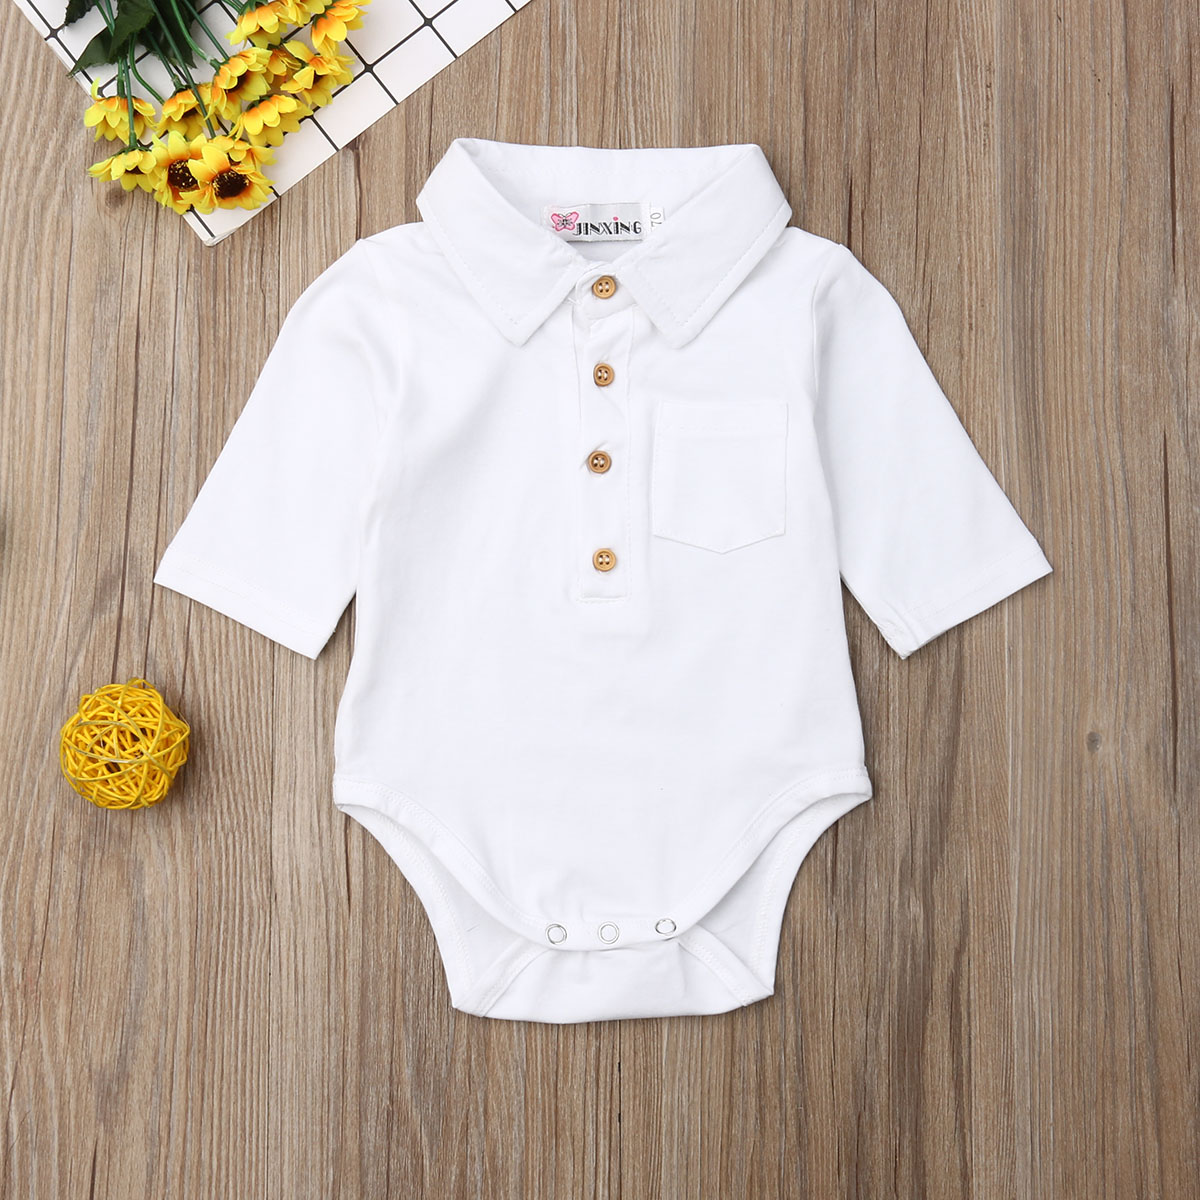 Pudcoco Newborn Baby Boy Clothes Solid Color Long Sleeve Cotton   Romper   Jumpsuit One-Piece Outfit Sunsuit Summer Clothes